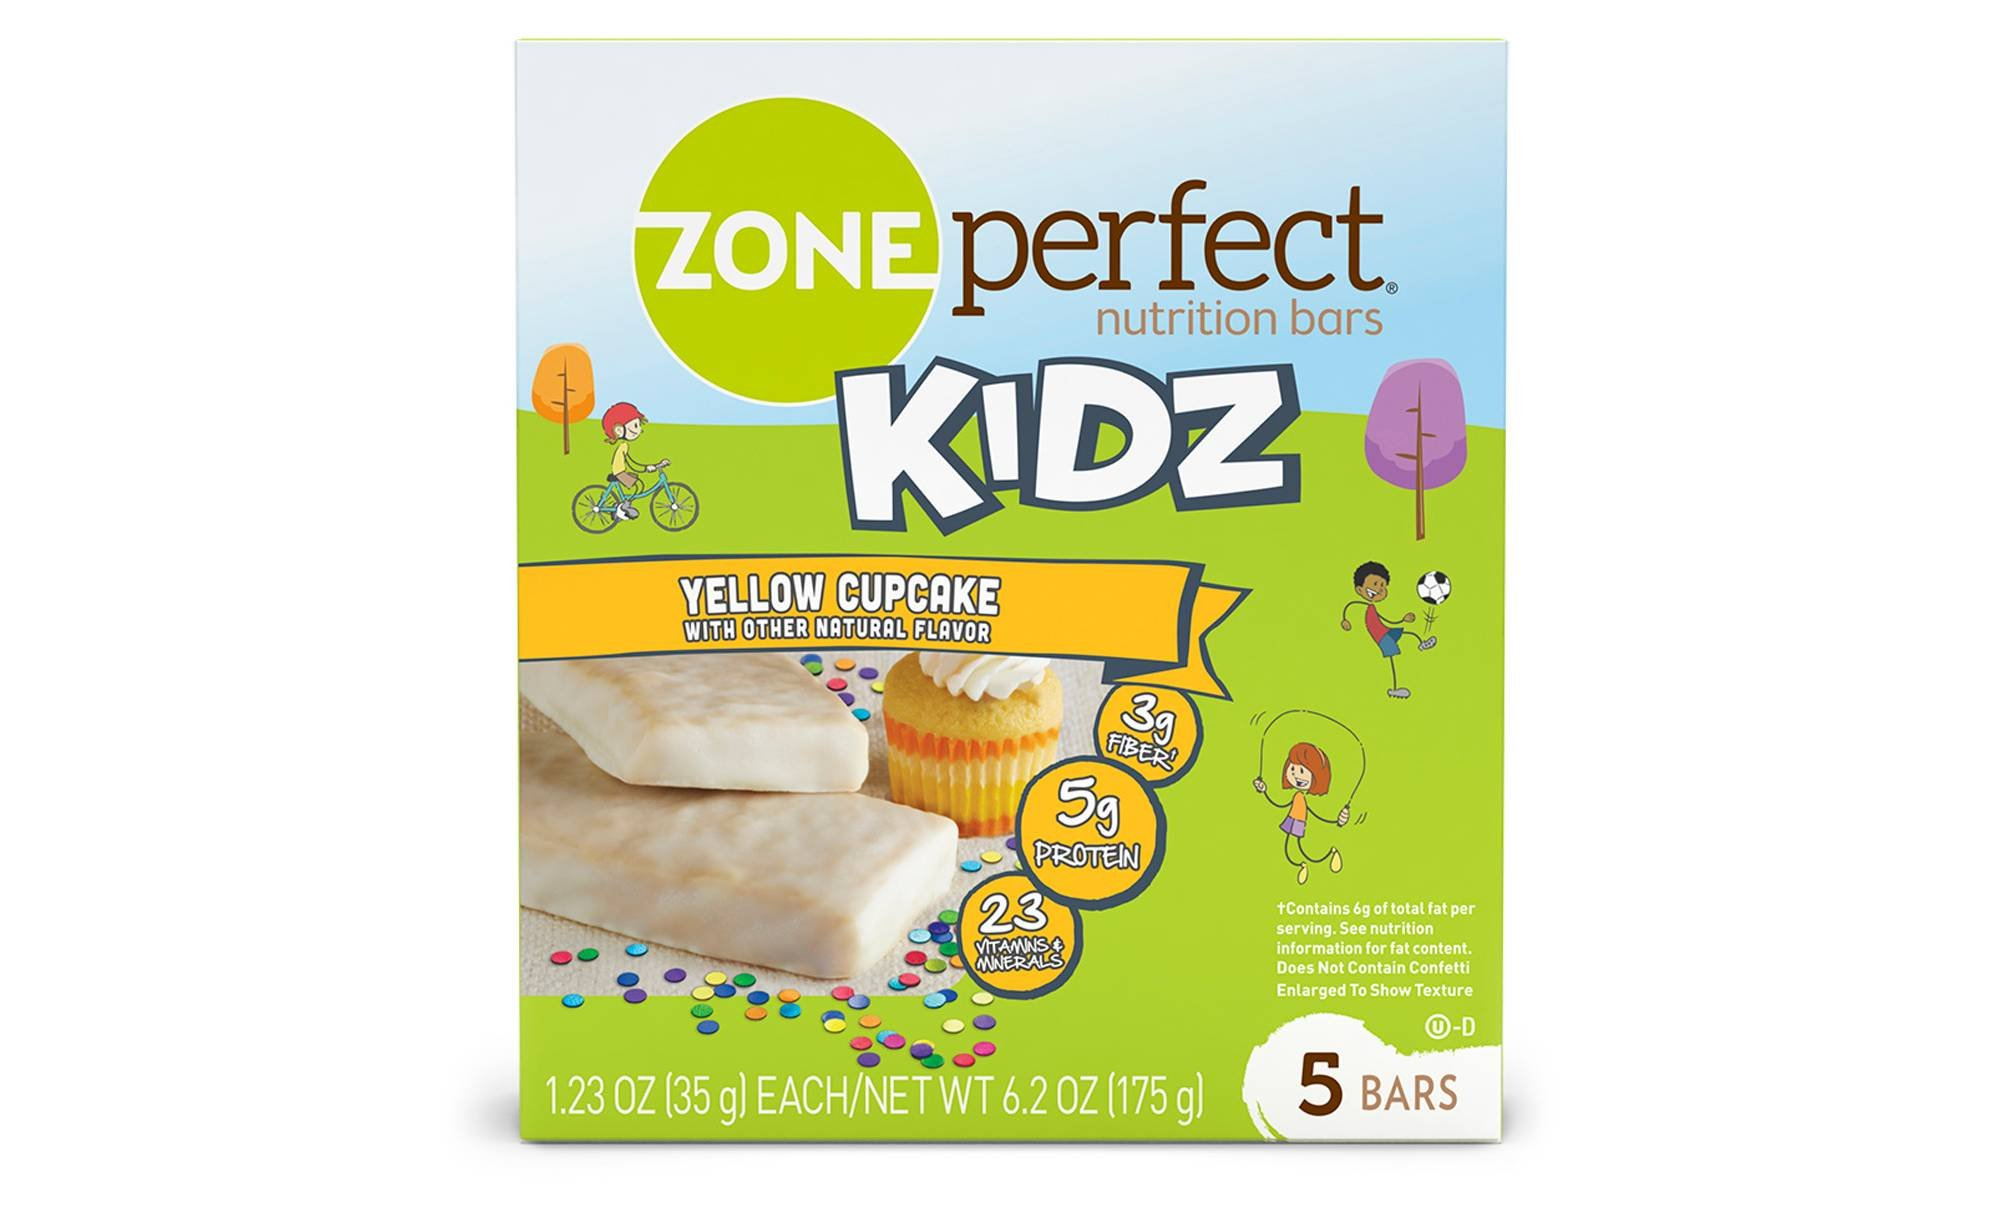 Zone Perfect Kids Yellow Cupcake Nutrition Bars 1.23ozx 5 bars(total 6.15oz) by Zone Perfect